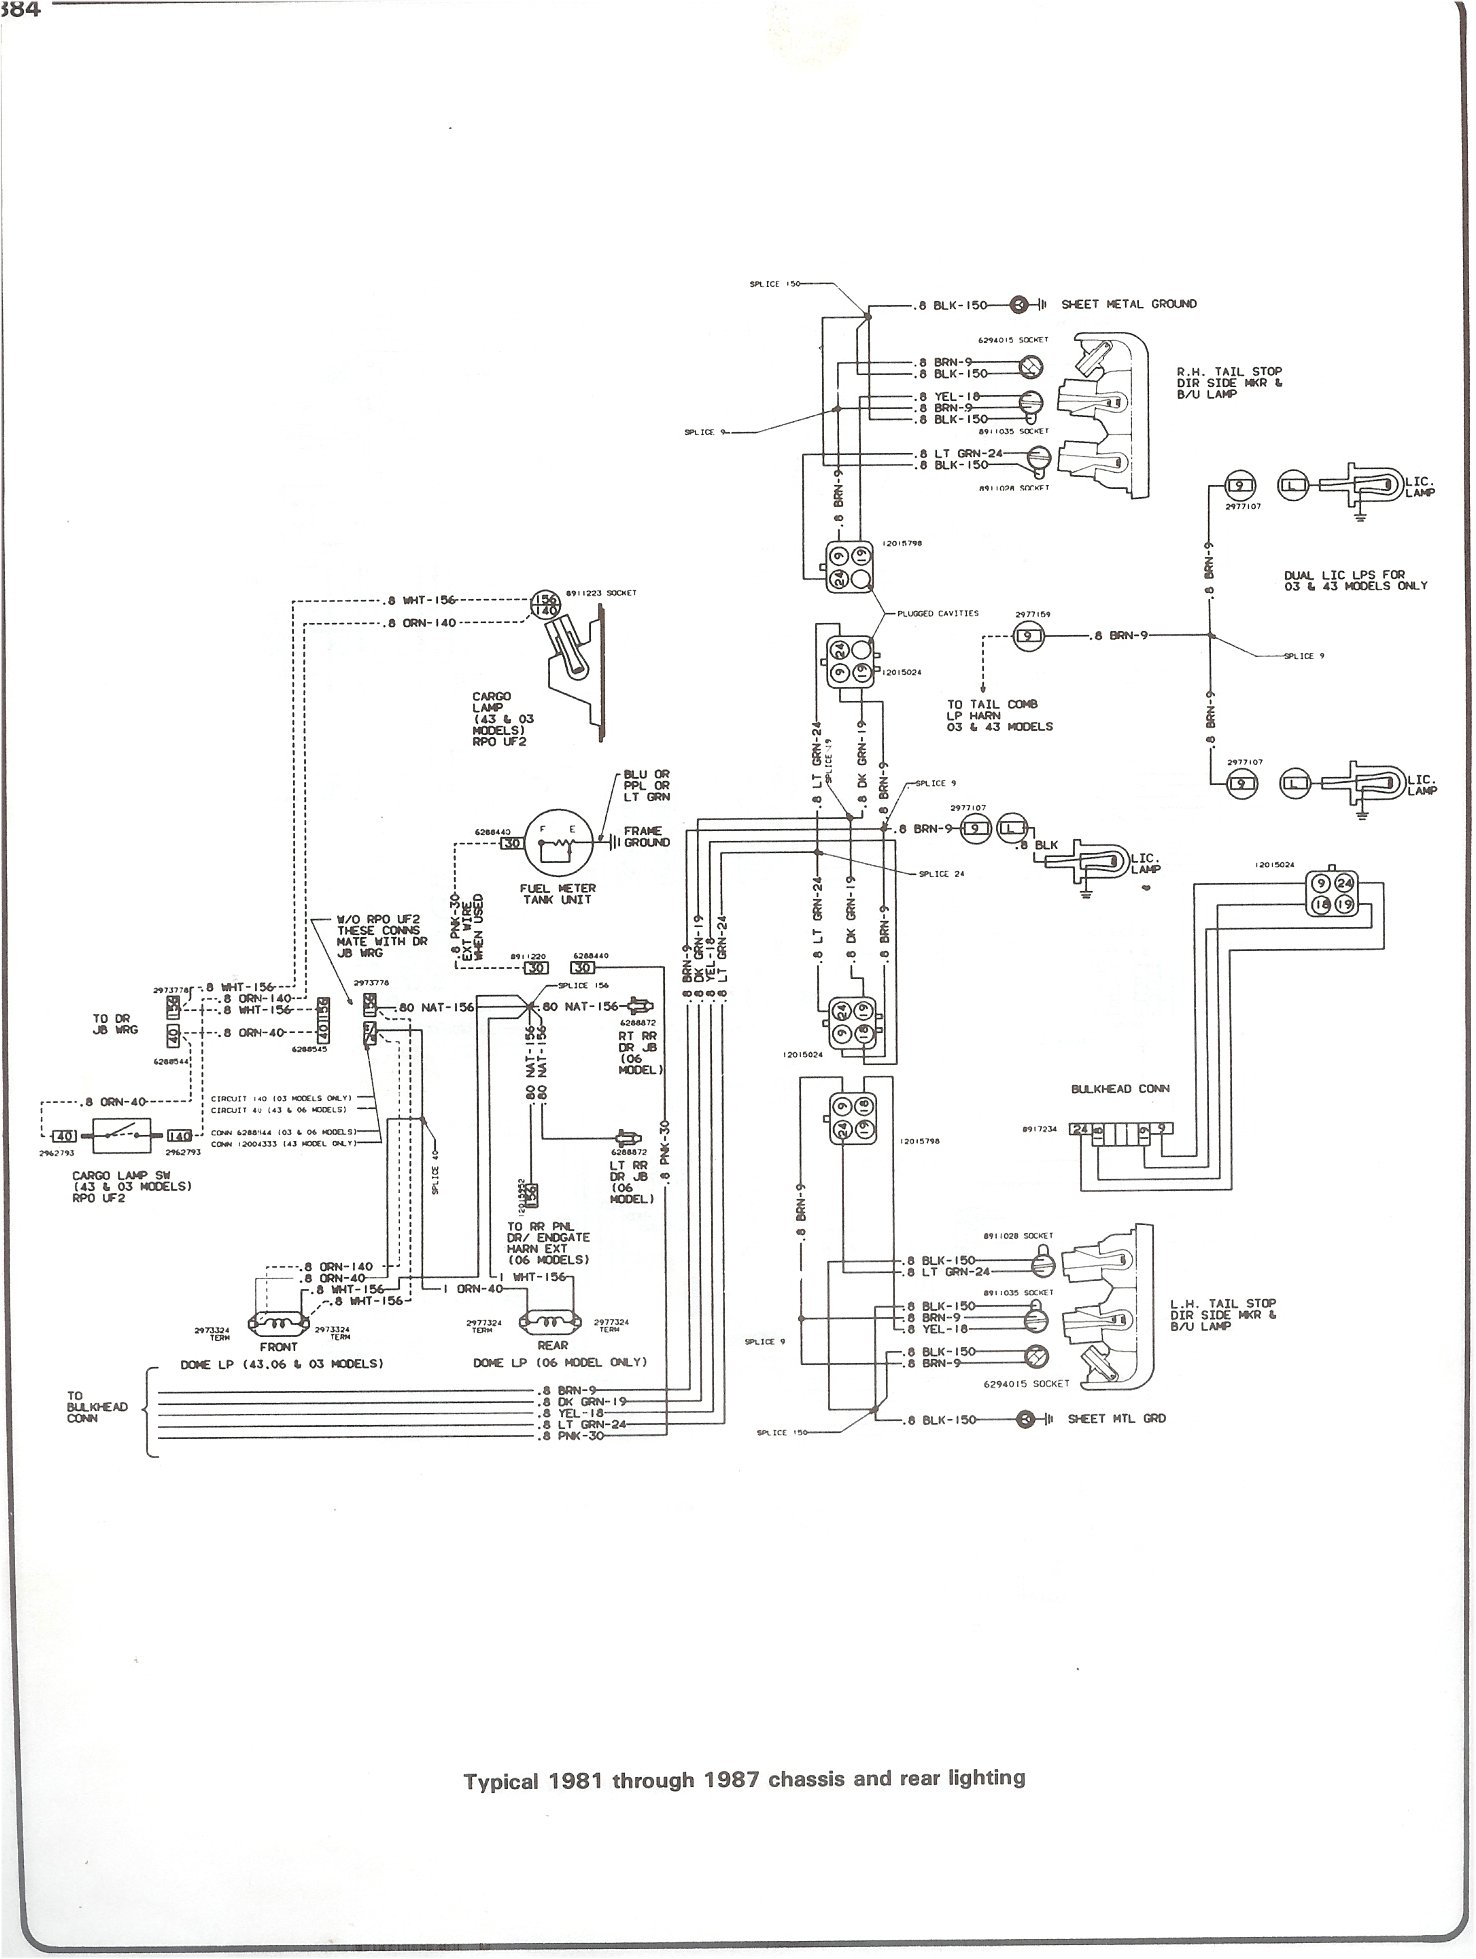 2005 gmc 1500 chassis diagrams best wiring library John Deere 5200 Wiring Diagram plete 73 87 wiring diagrams 1986 gmc sierra headlights 1986 gmc sierra wiring diagram